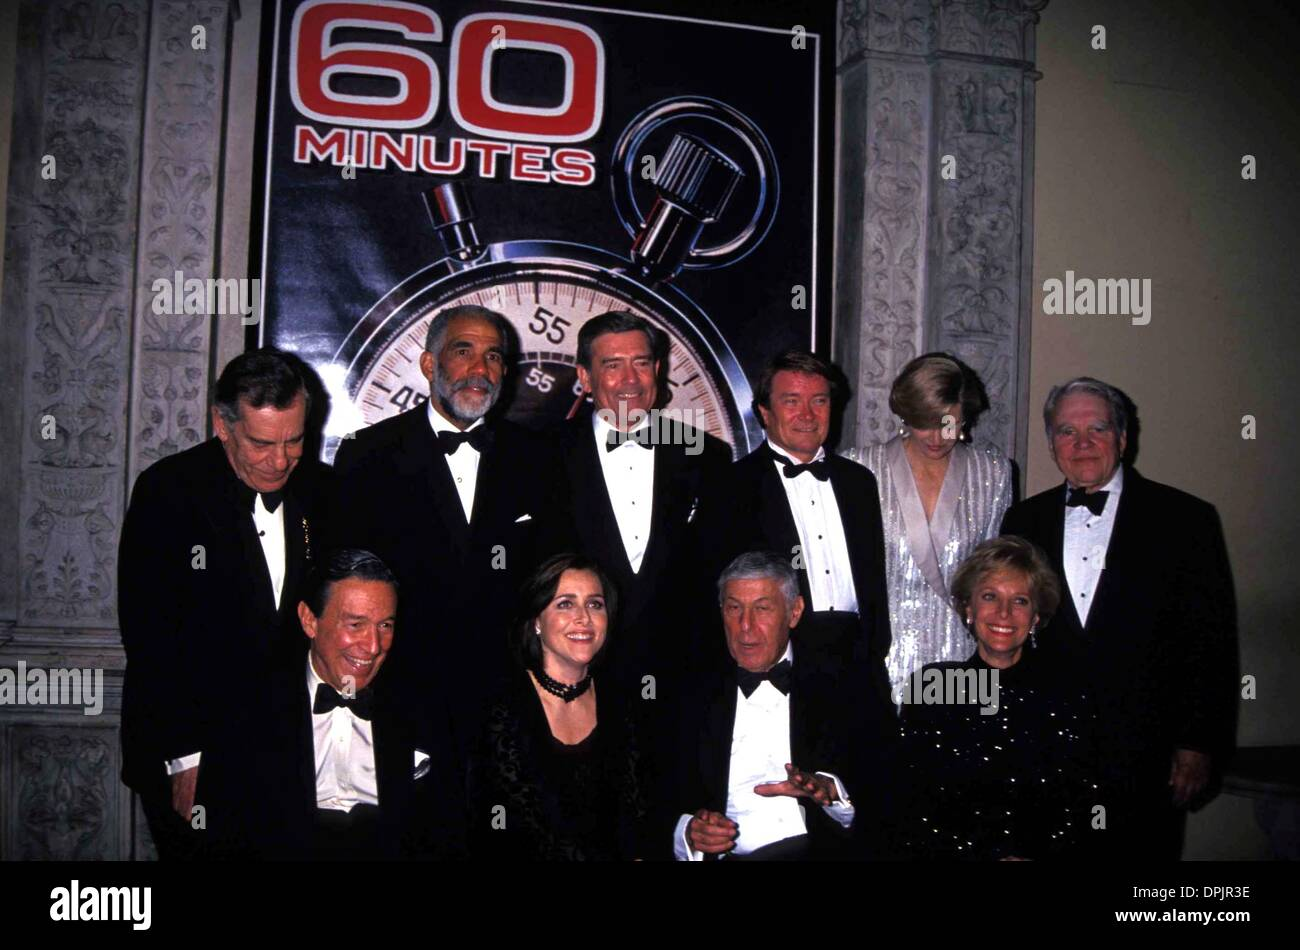 Apr 13  Minutes 25th Anniversary  Minutes Cast Stephen Trupp Front Mike Wallace Lesley Stahl Back Morley Safer Ed Dley